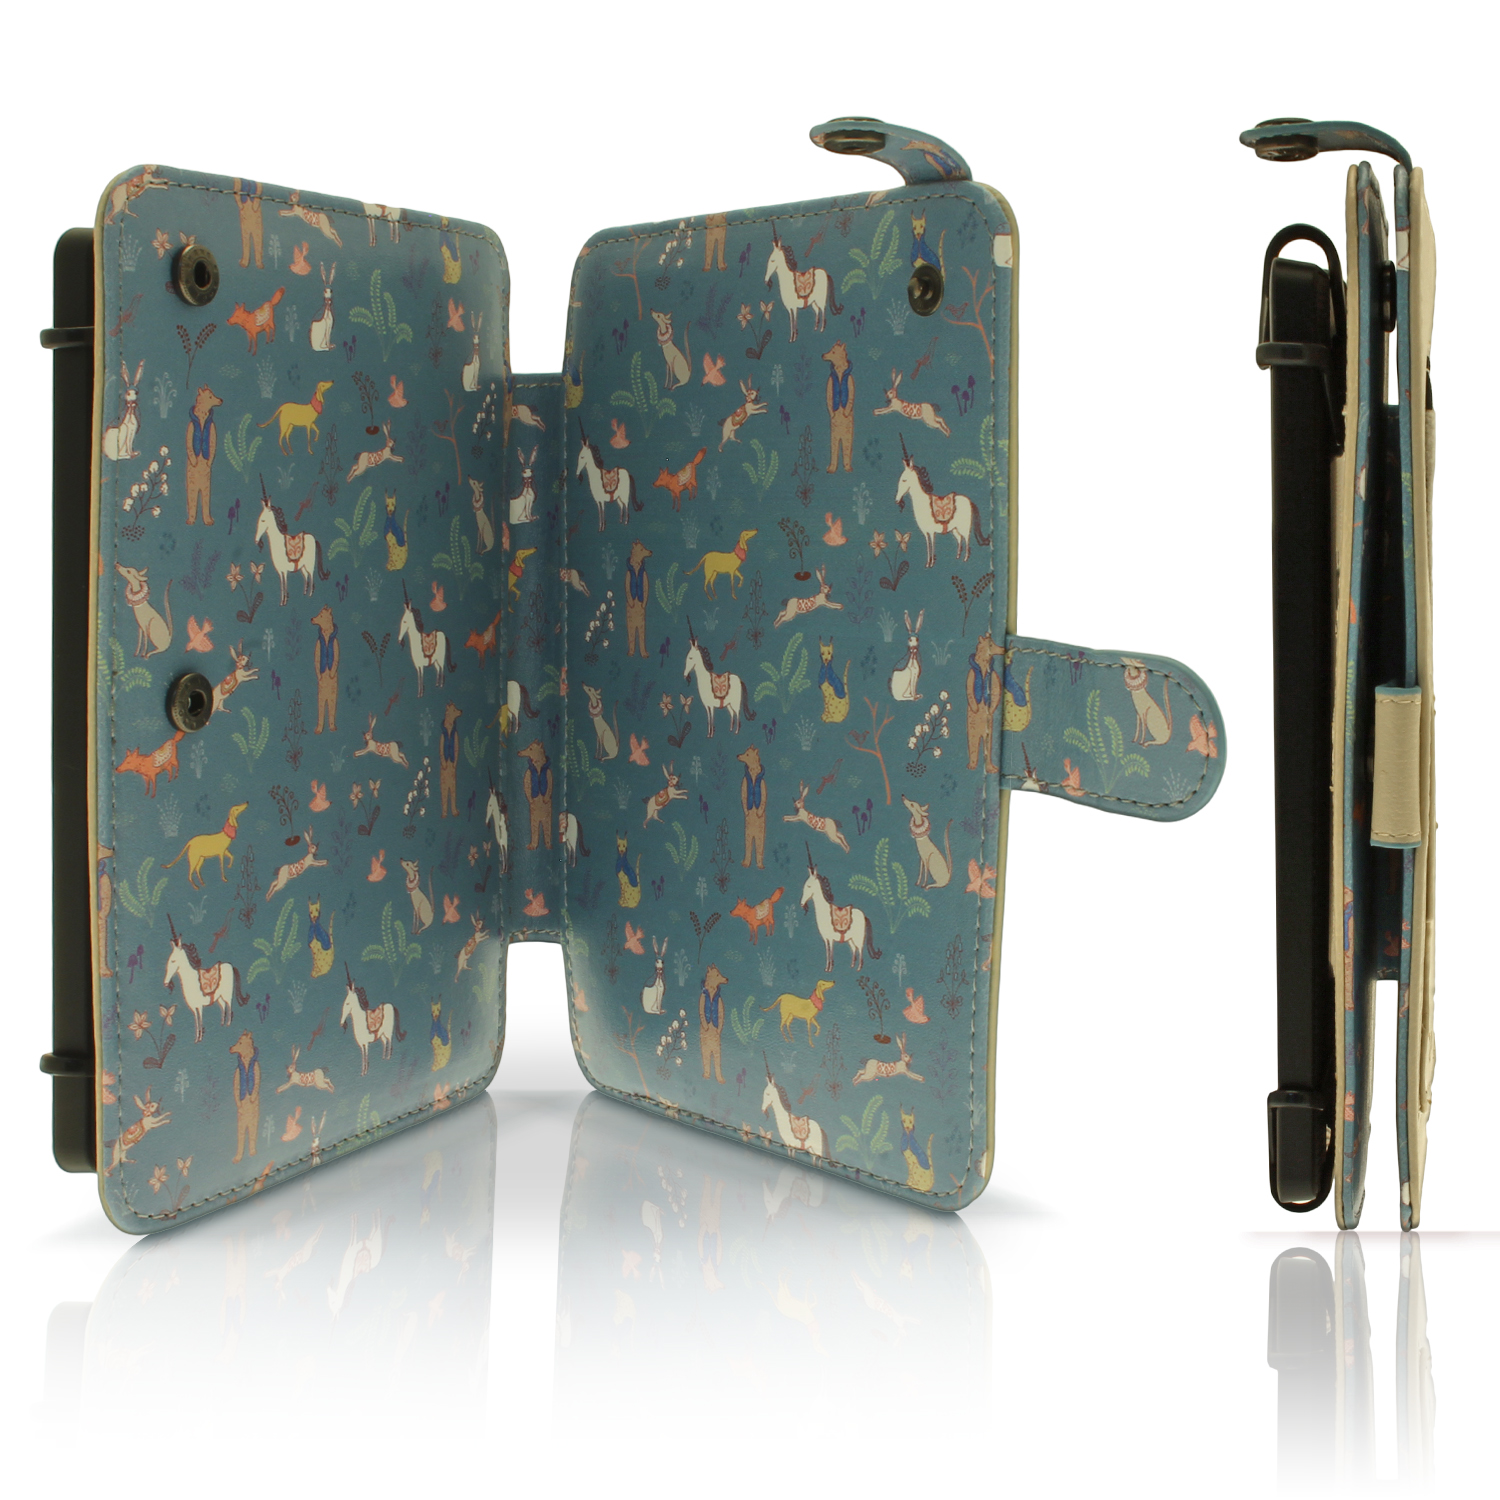 Pu leather skin folio case for kobo glo hd 2015 touch 2 for Housse kobo aura h2o edition 2